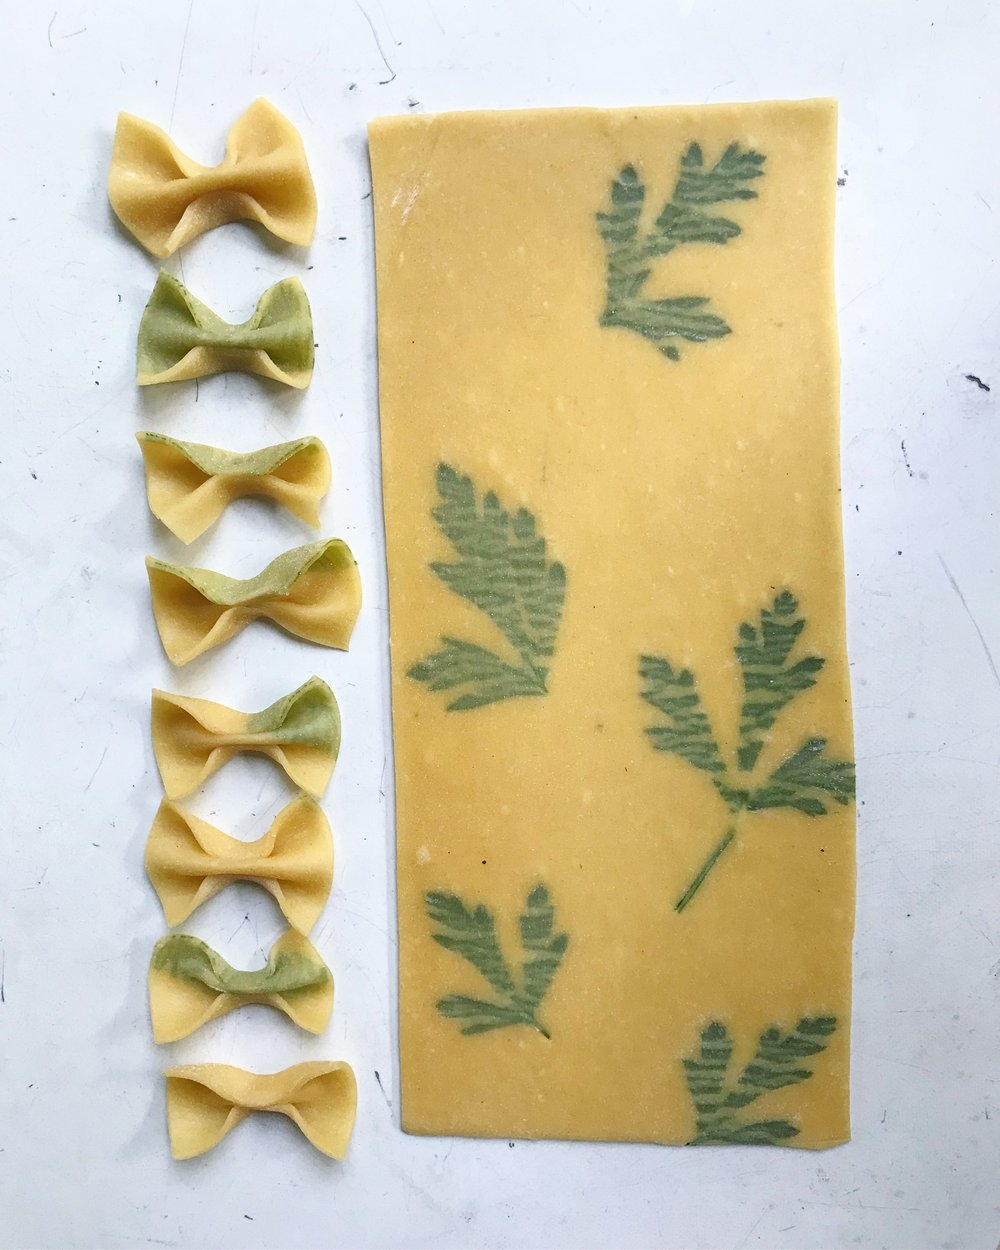 Homemade pasta edible flowers 2